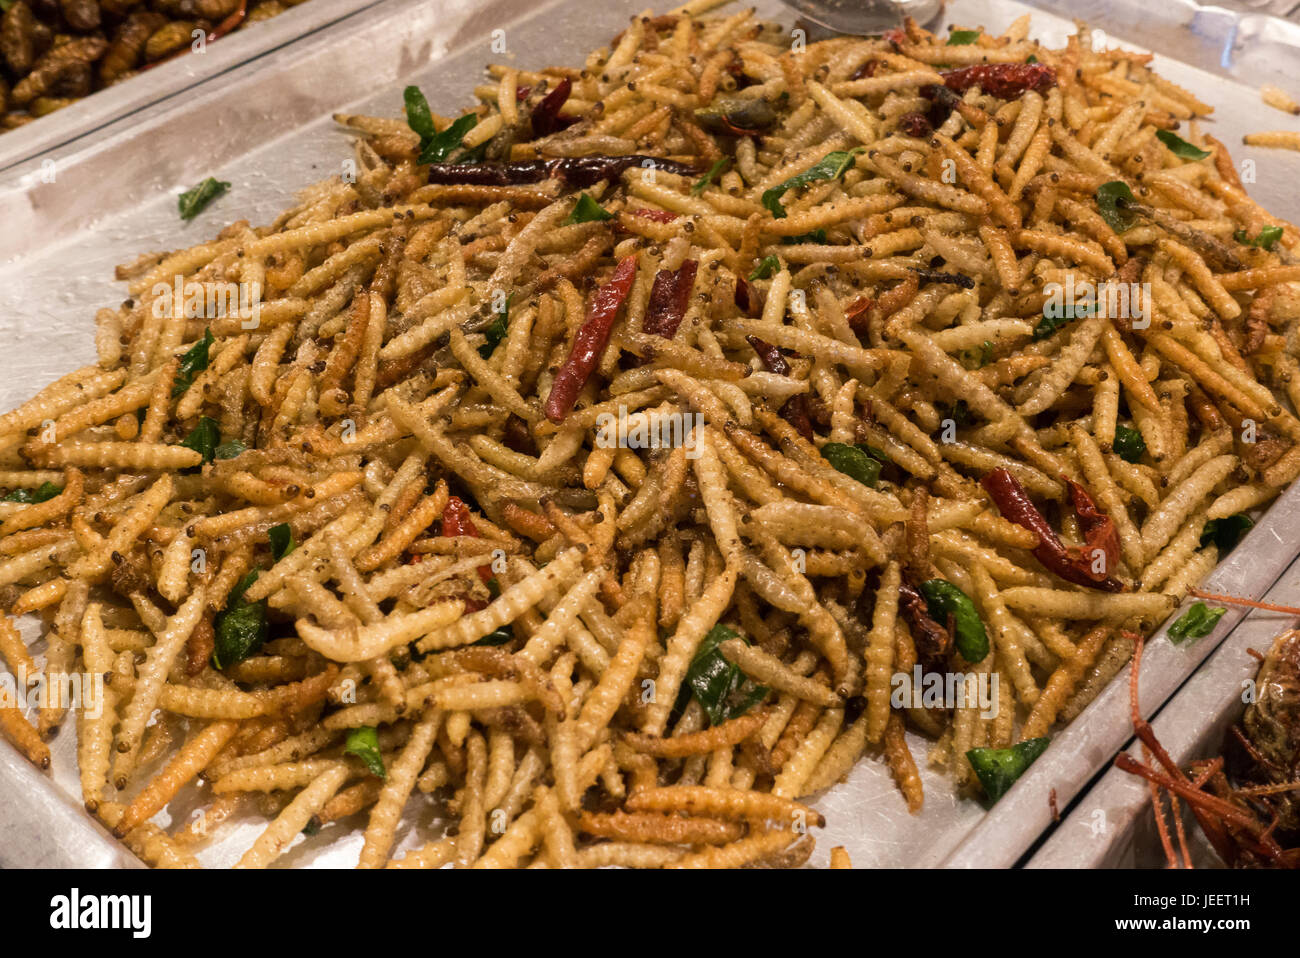 how to eat fried worms project ideas